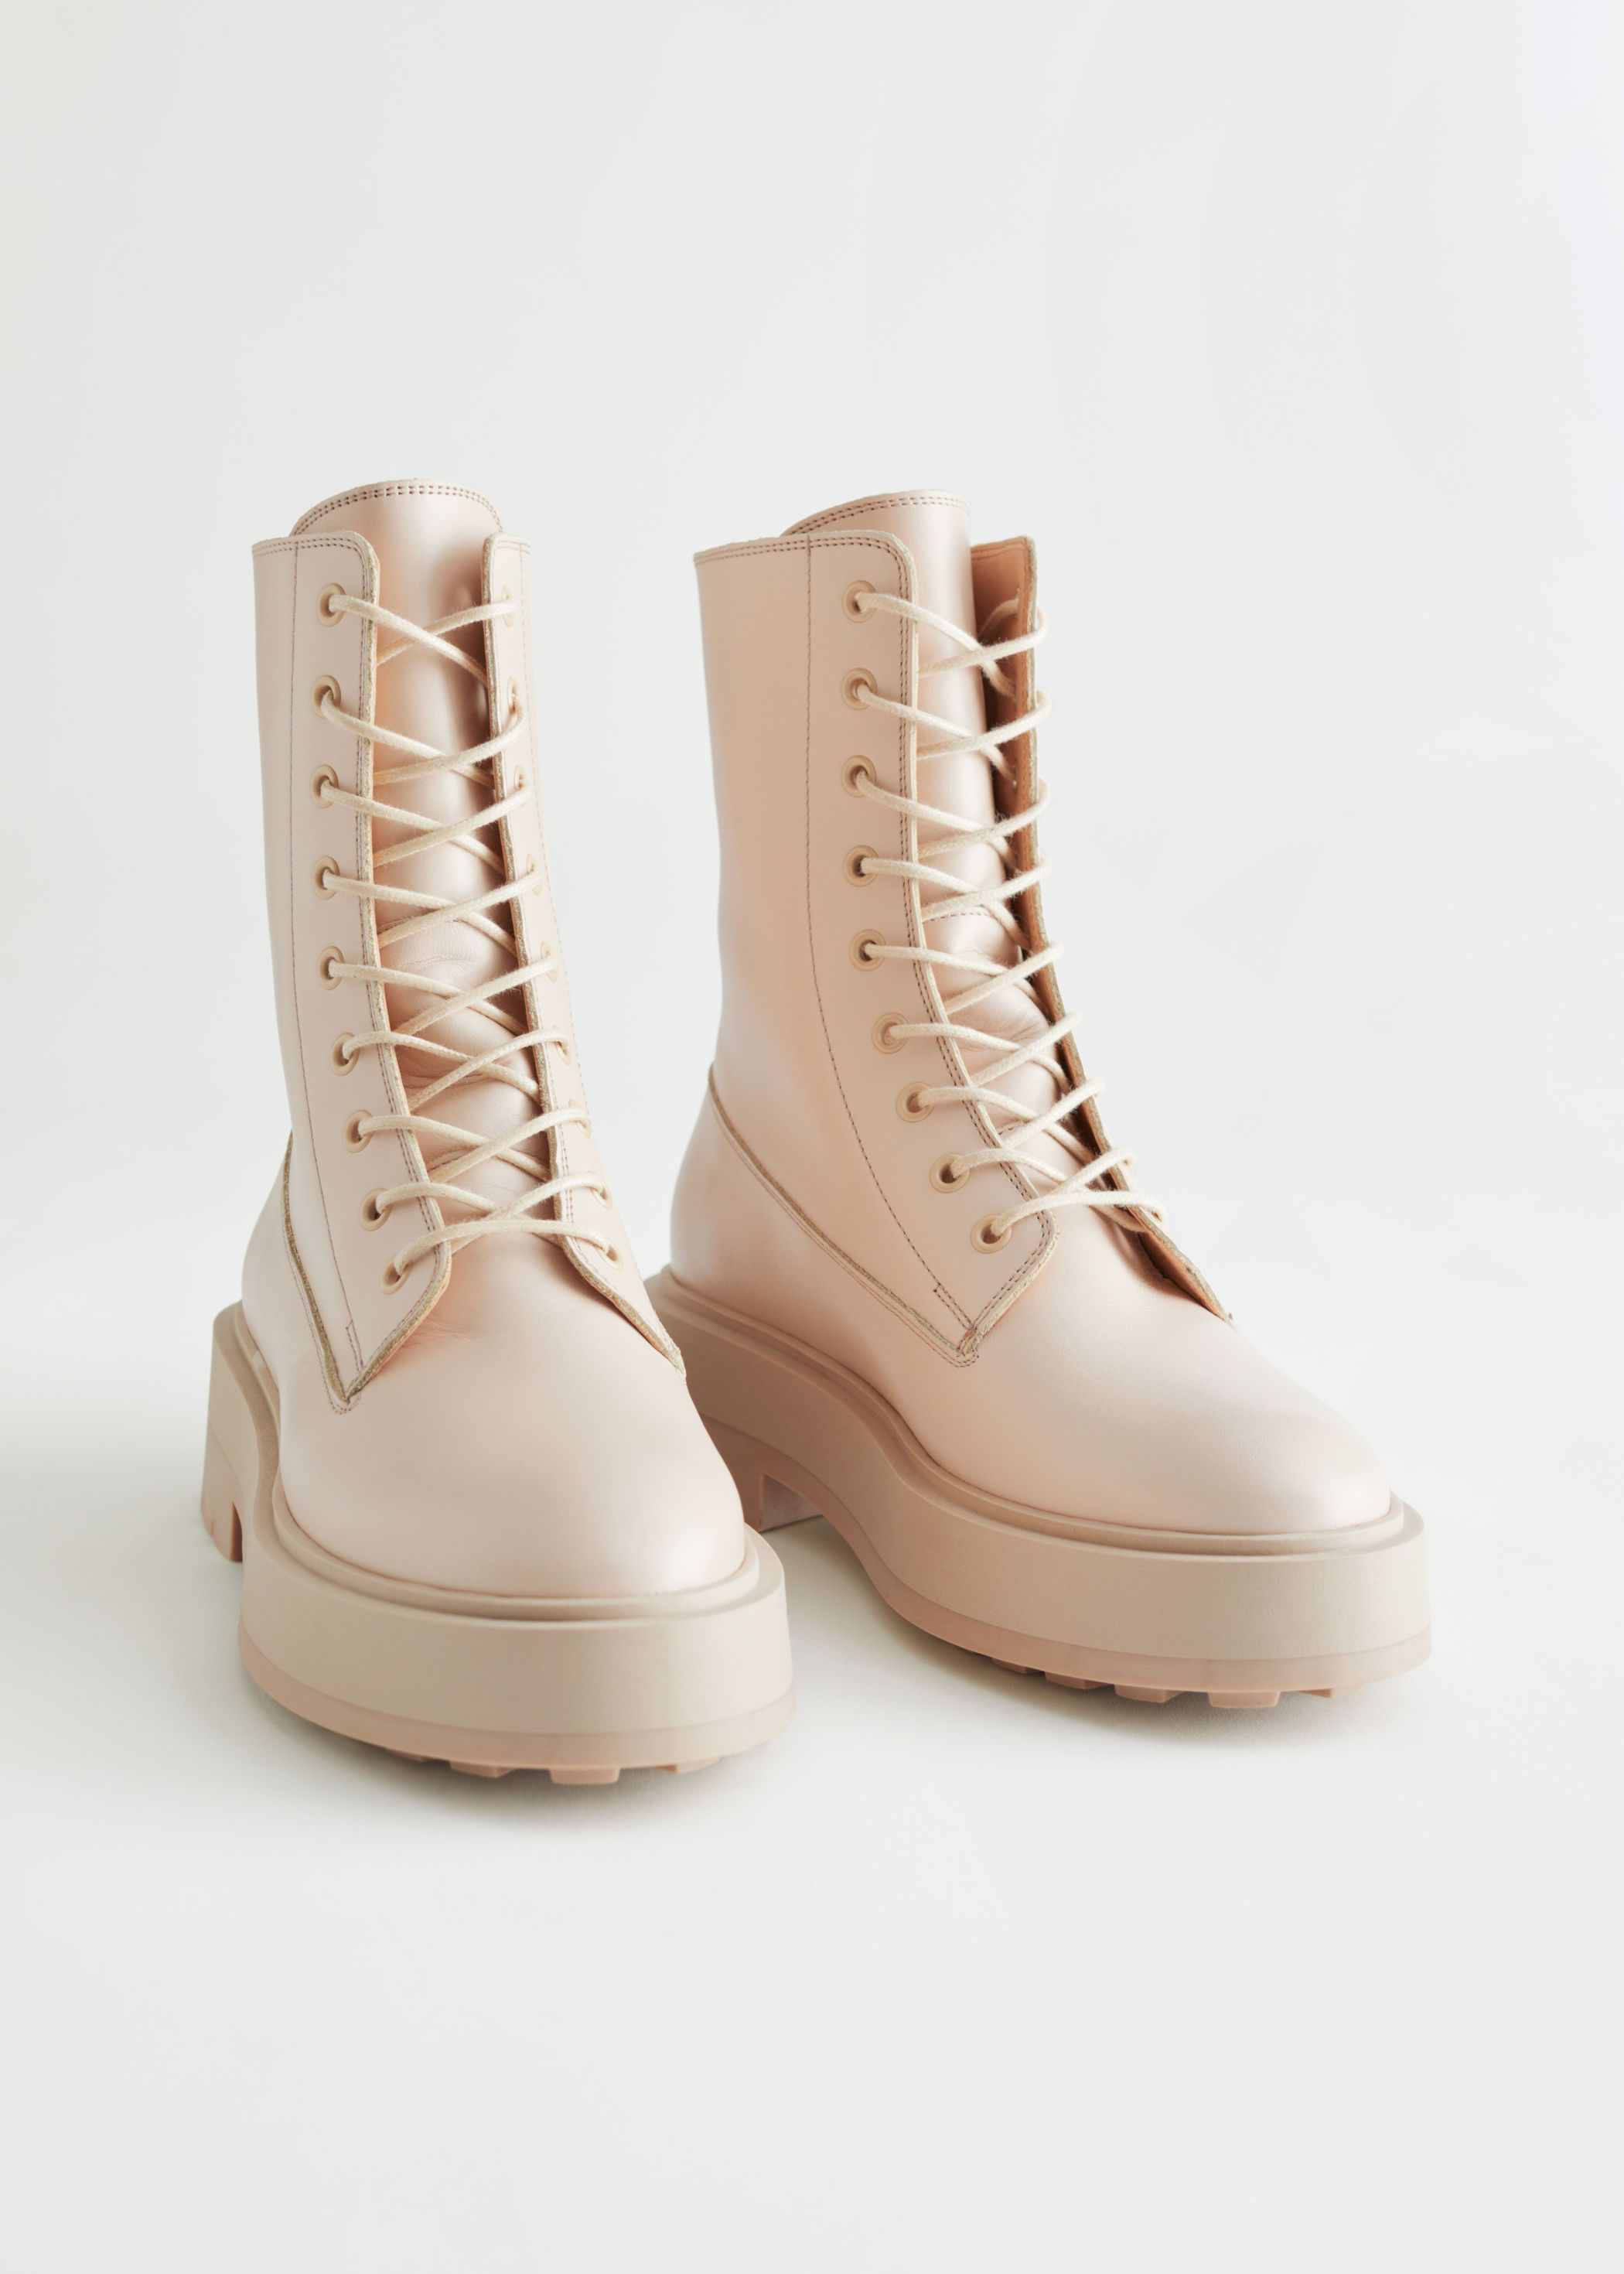 Boots, Beige boots, Chunky boots